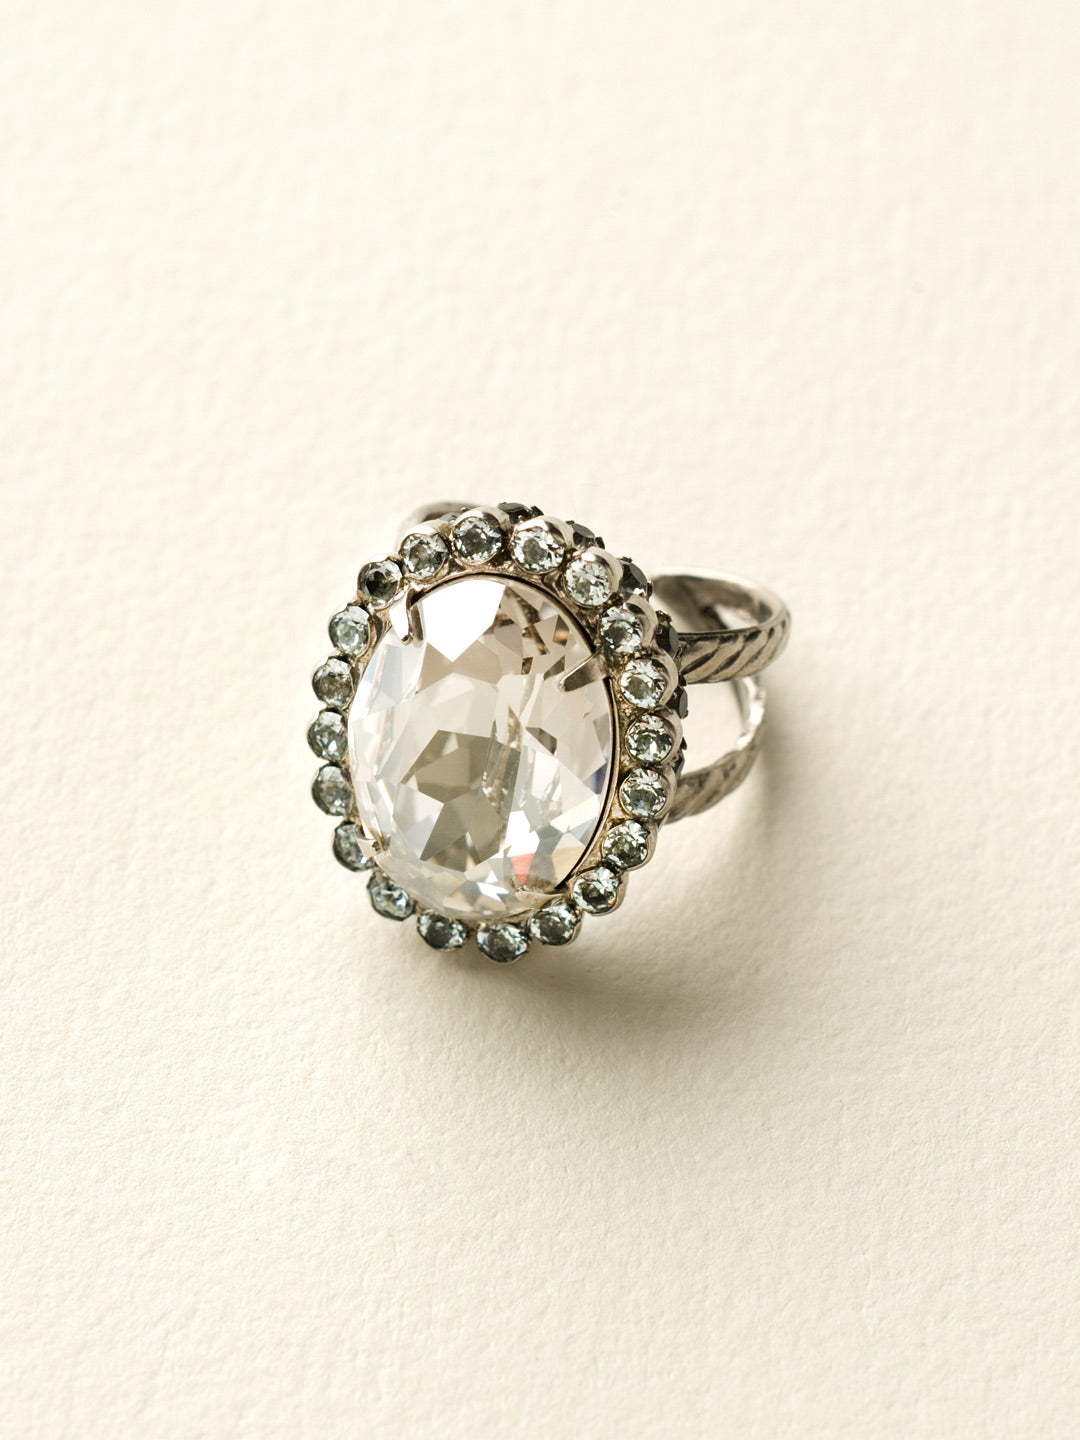 Glamorous Oval-Cut Cocktail Ring - RBT68ASCRO